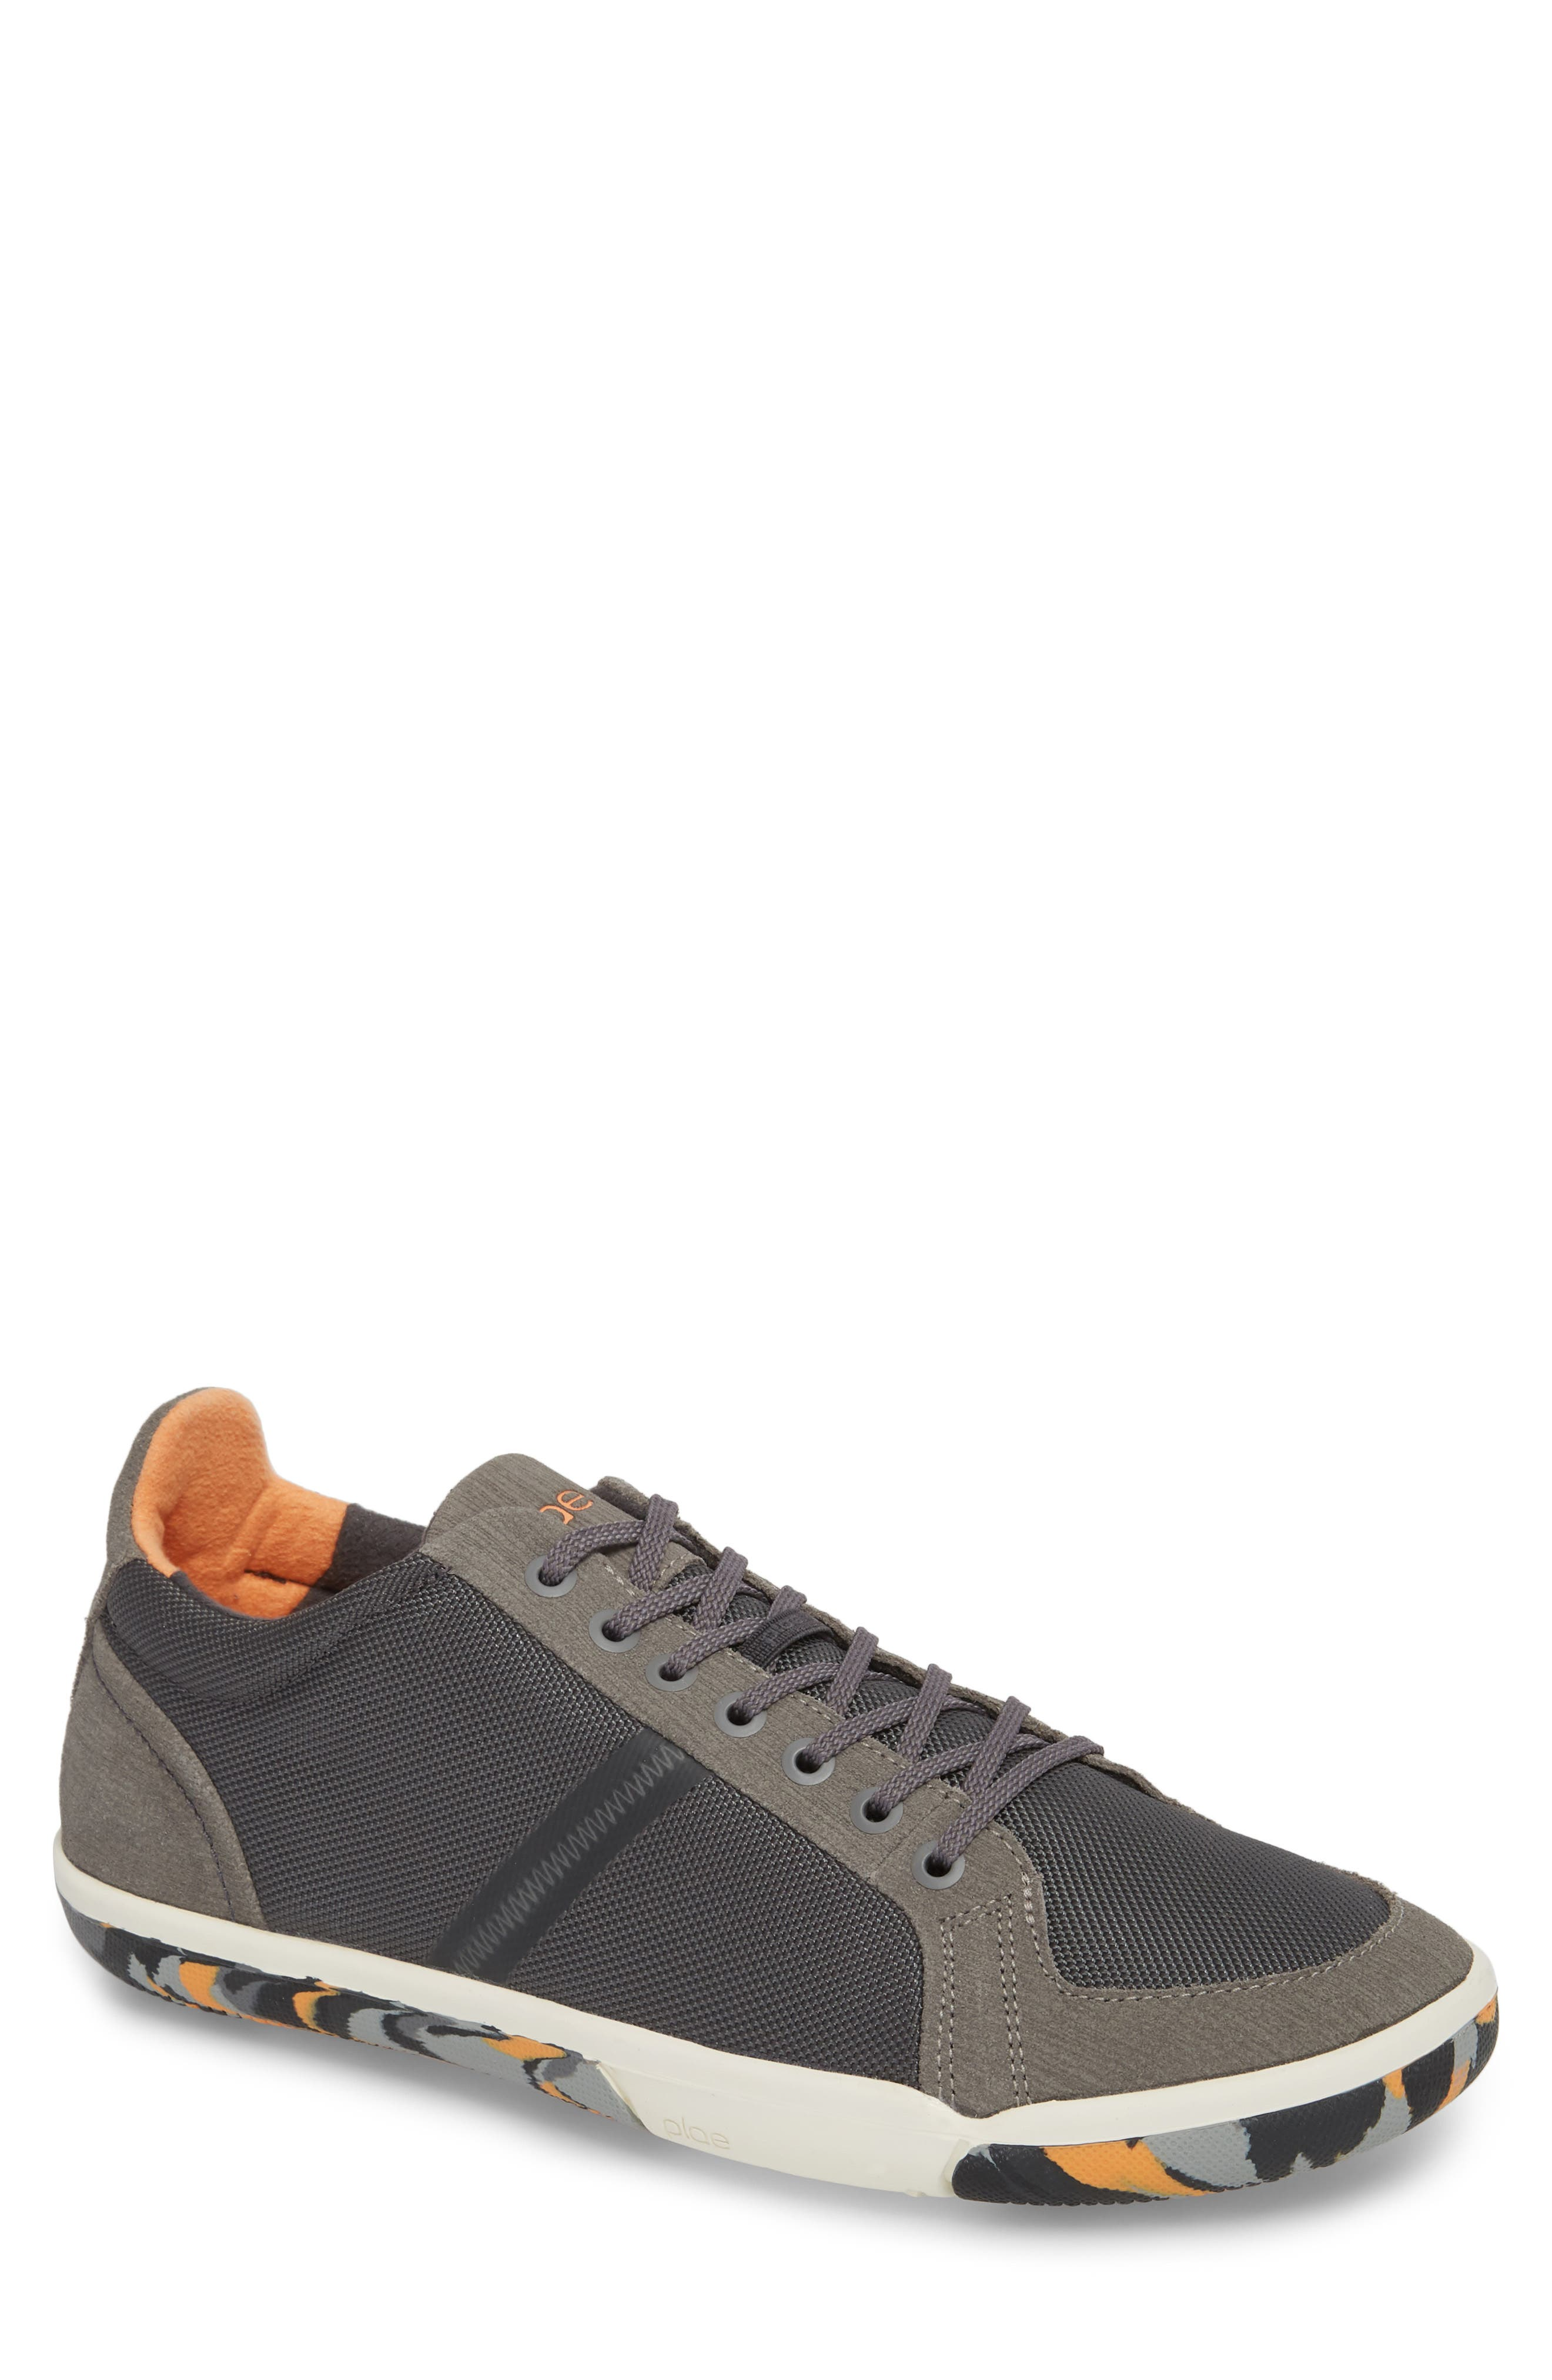 Prospect Low Top Sneaker,                         Main,                         color, HYPERSPACE